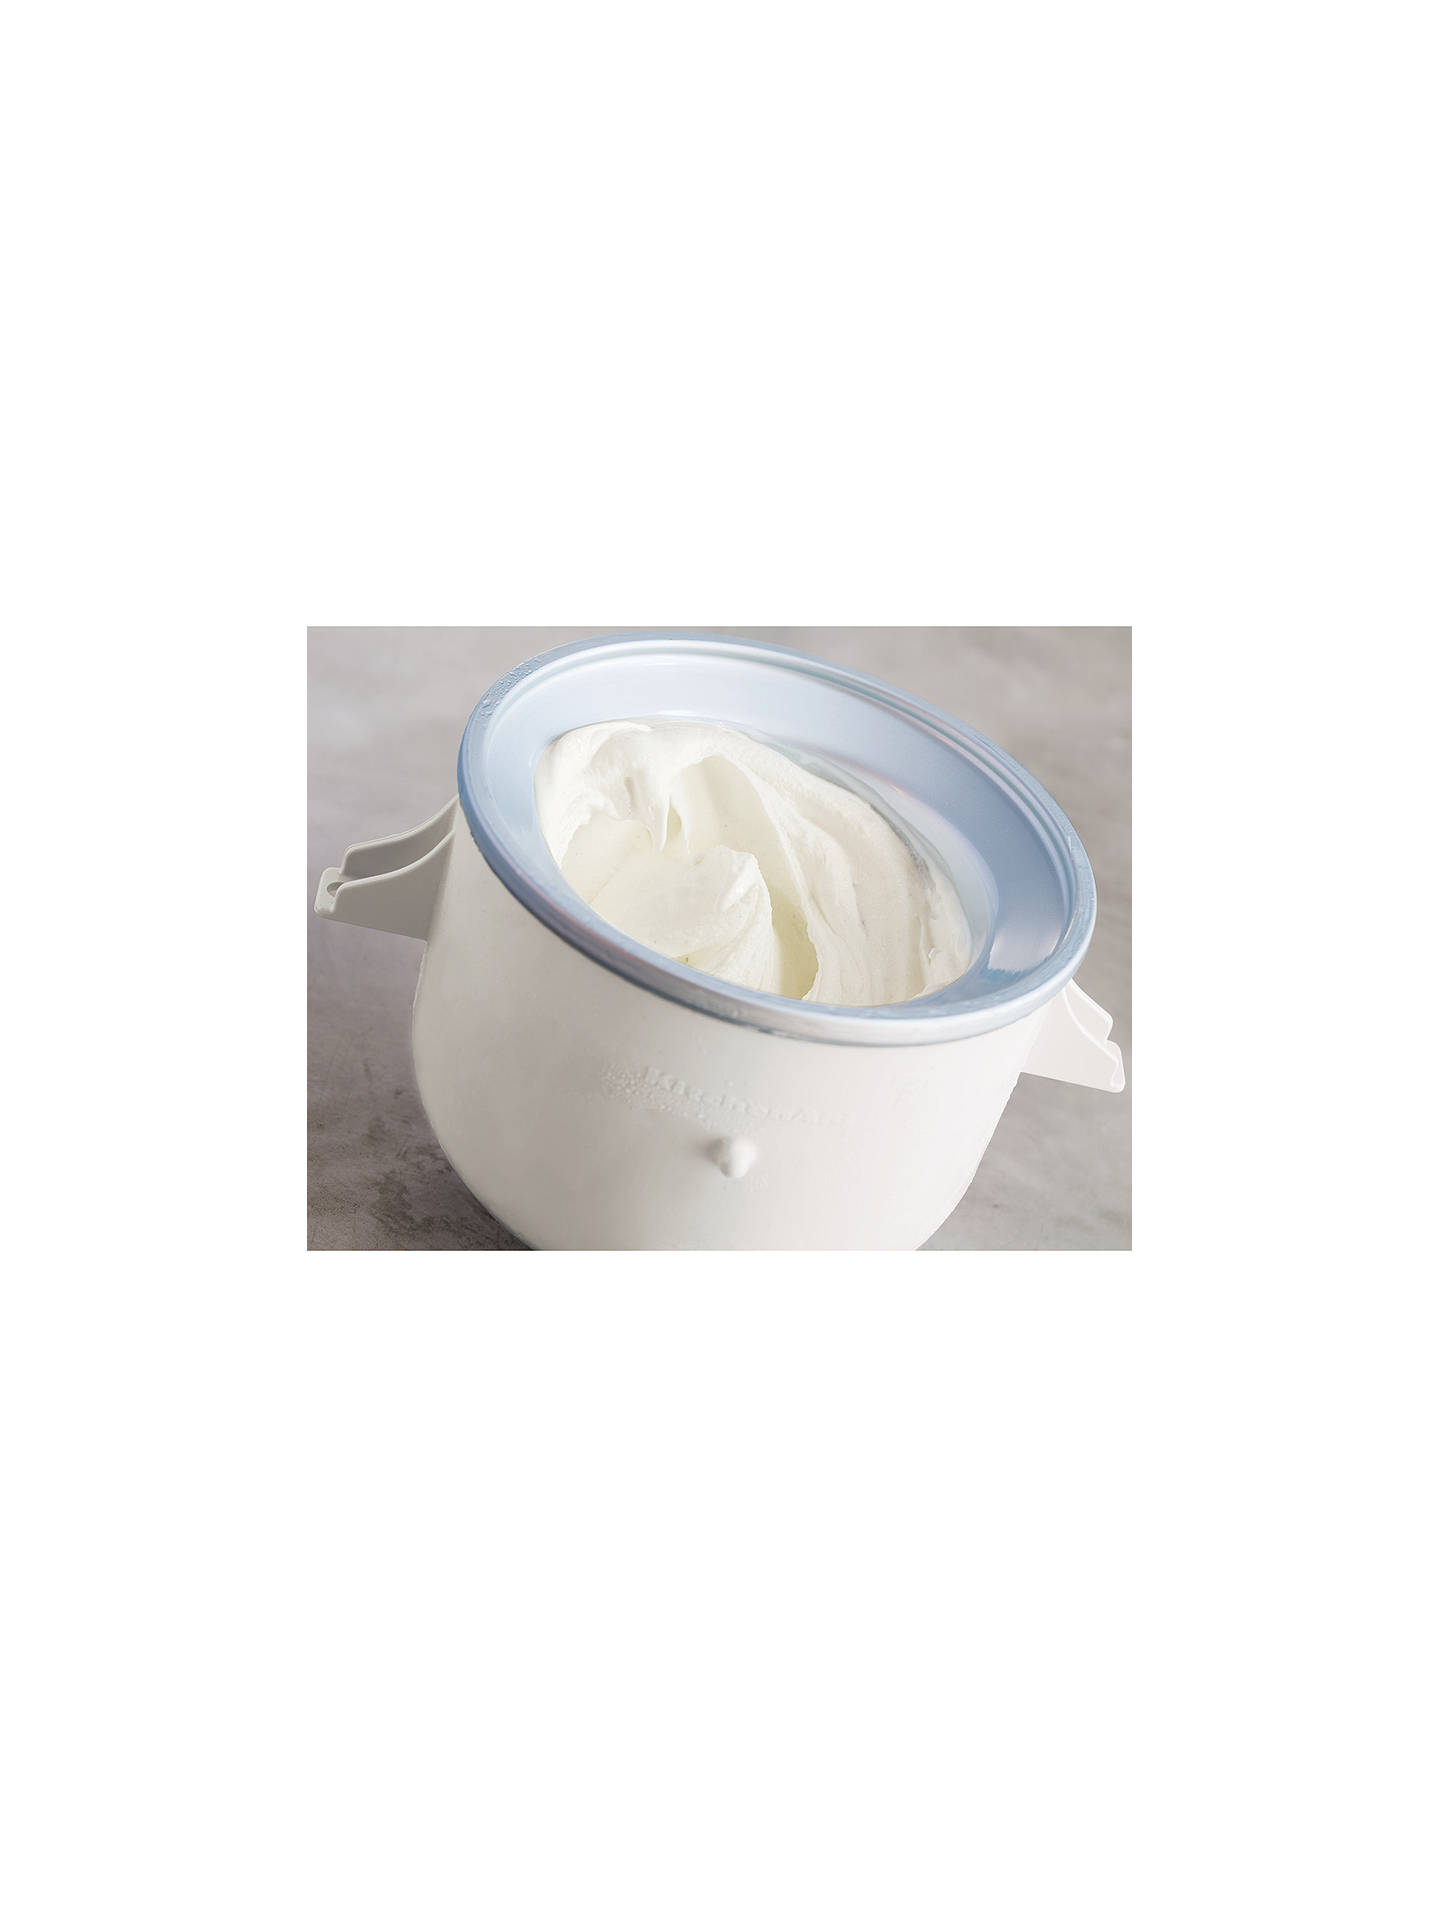 BuyKitchenAid Ice Cream Maker Accessory for Stand Mixer Online at johnlewis.com